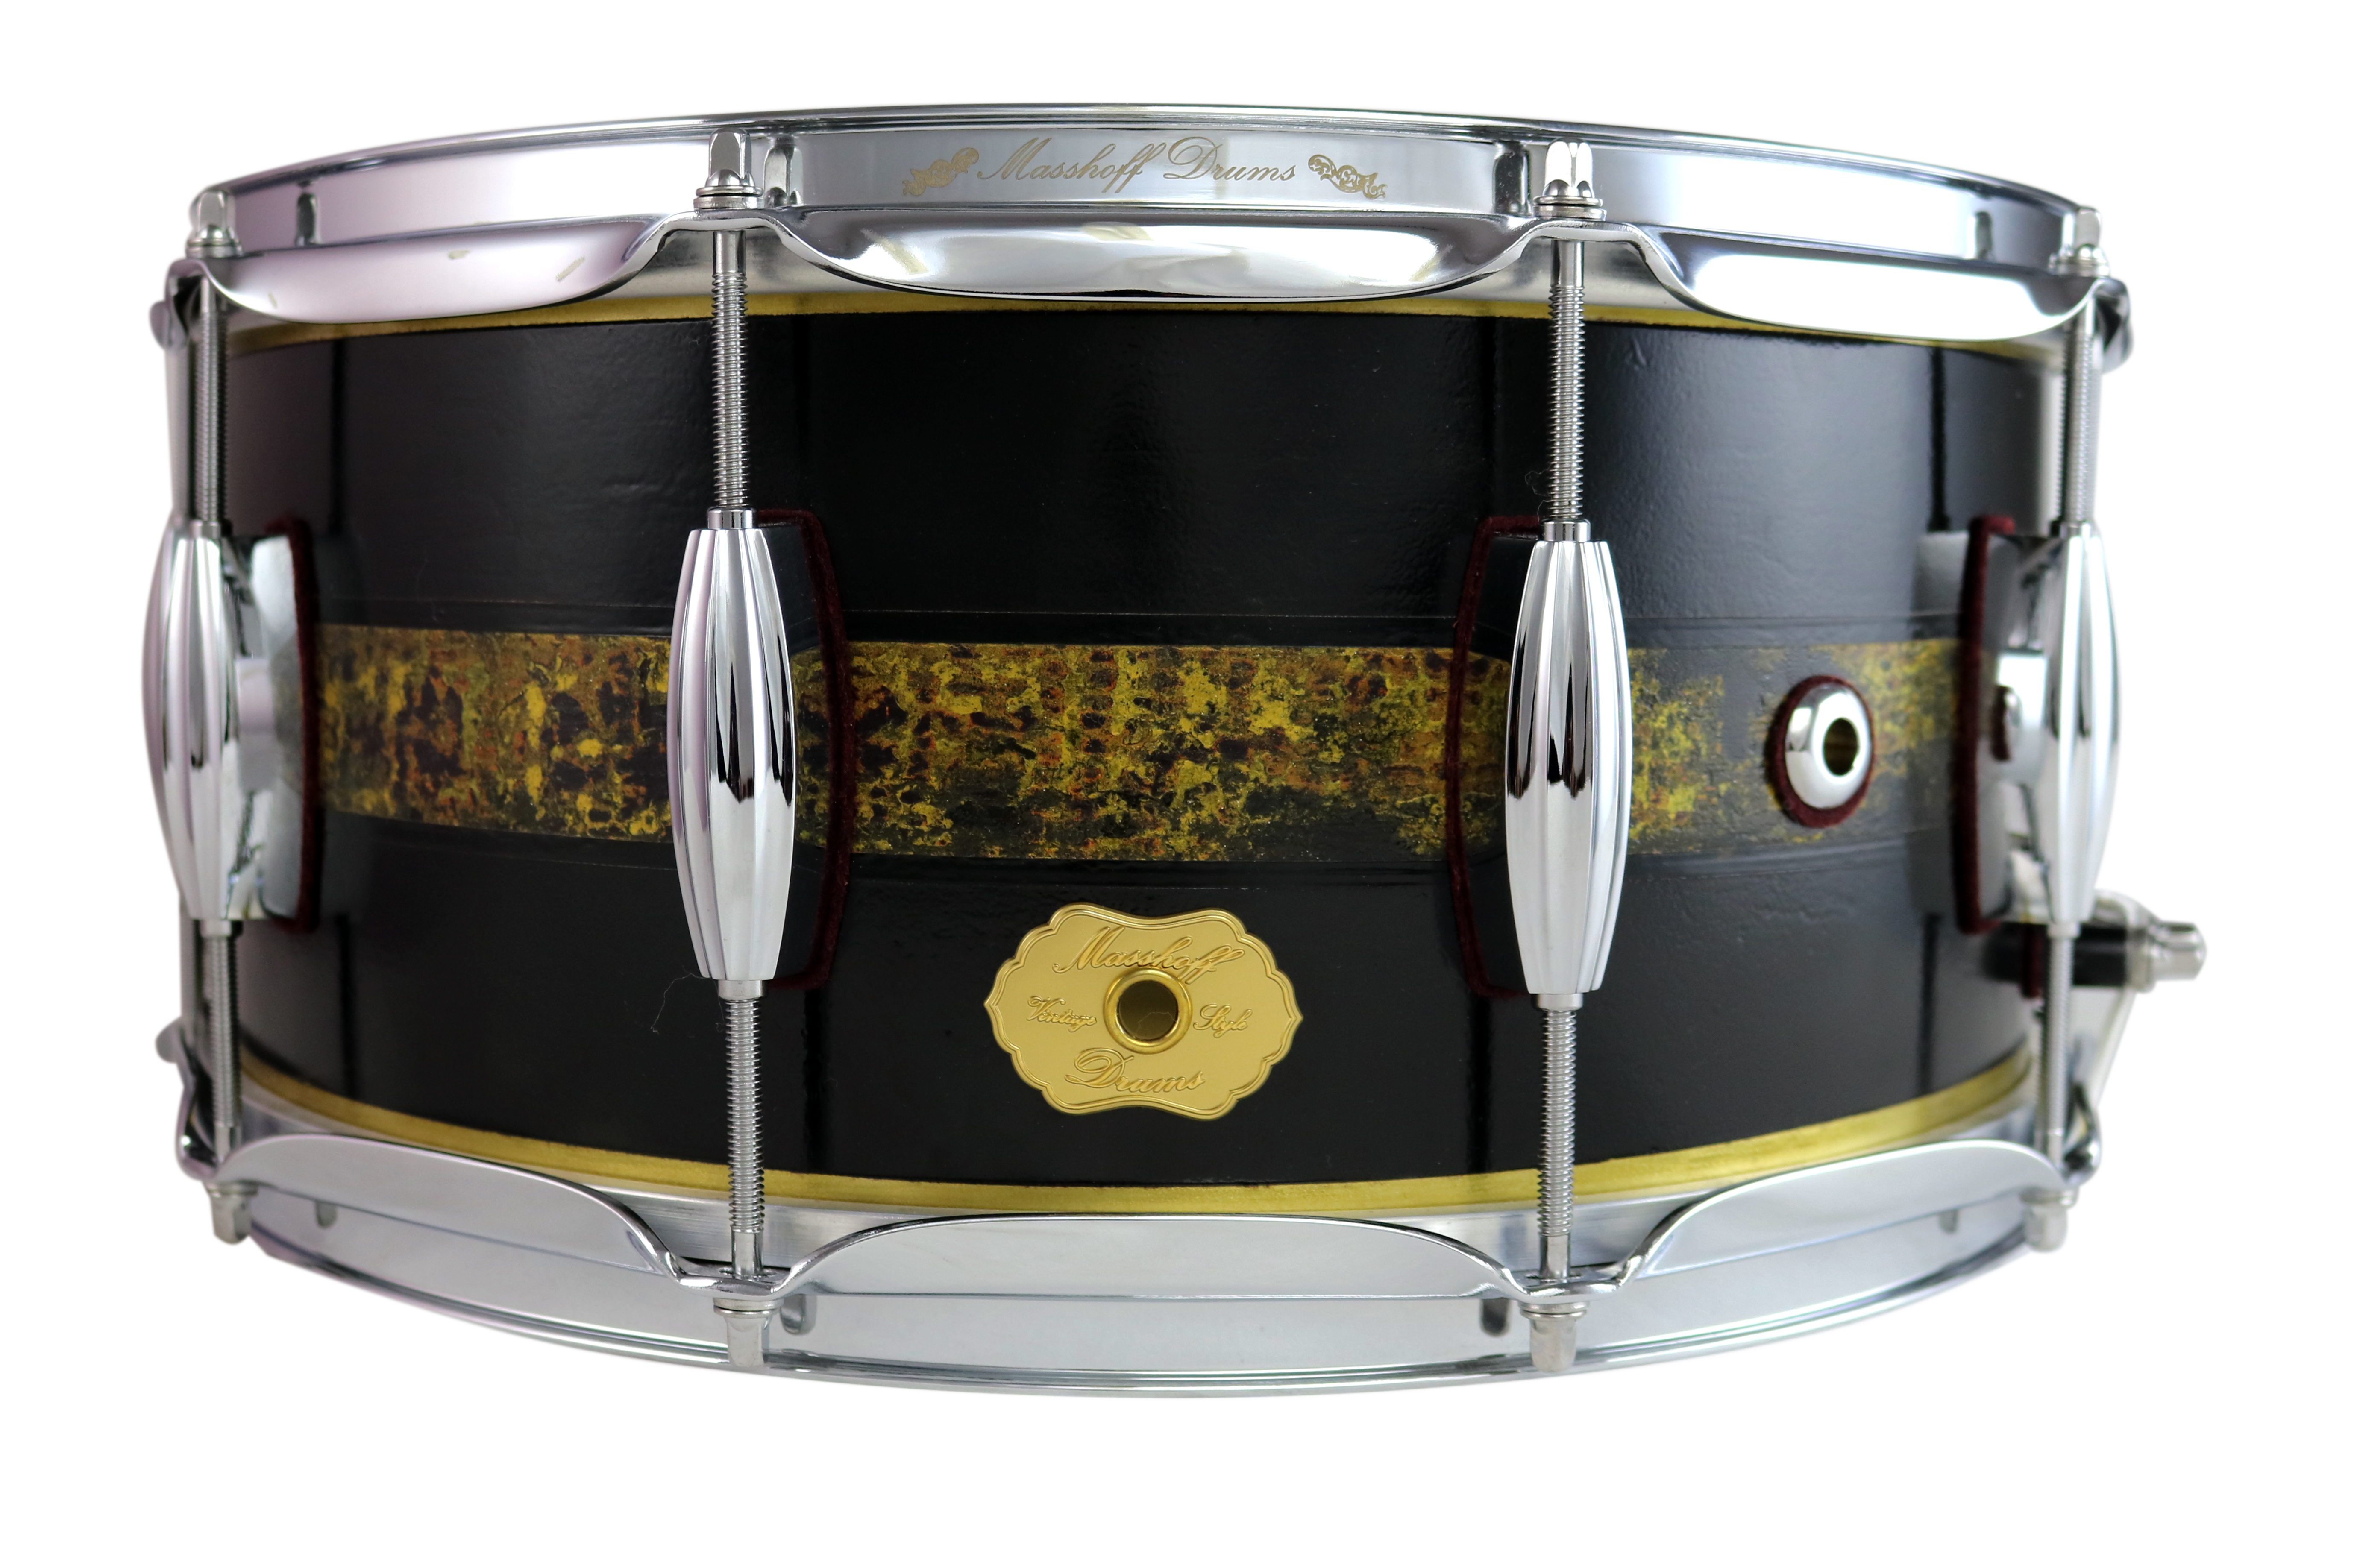 "Masshoff Drums 14""x 6.5"" Messing Snare Drum ""Avalon Brass / Duco King"" 00061"